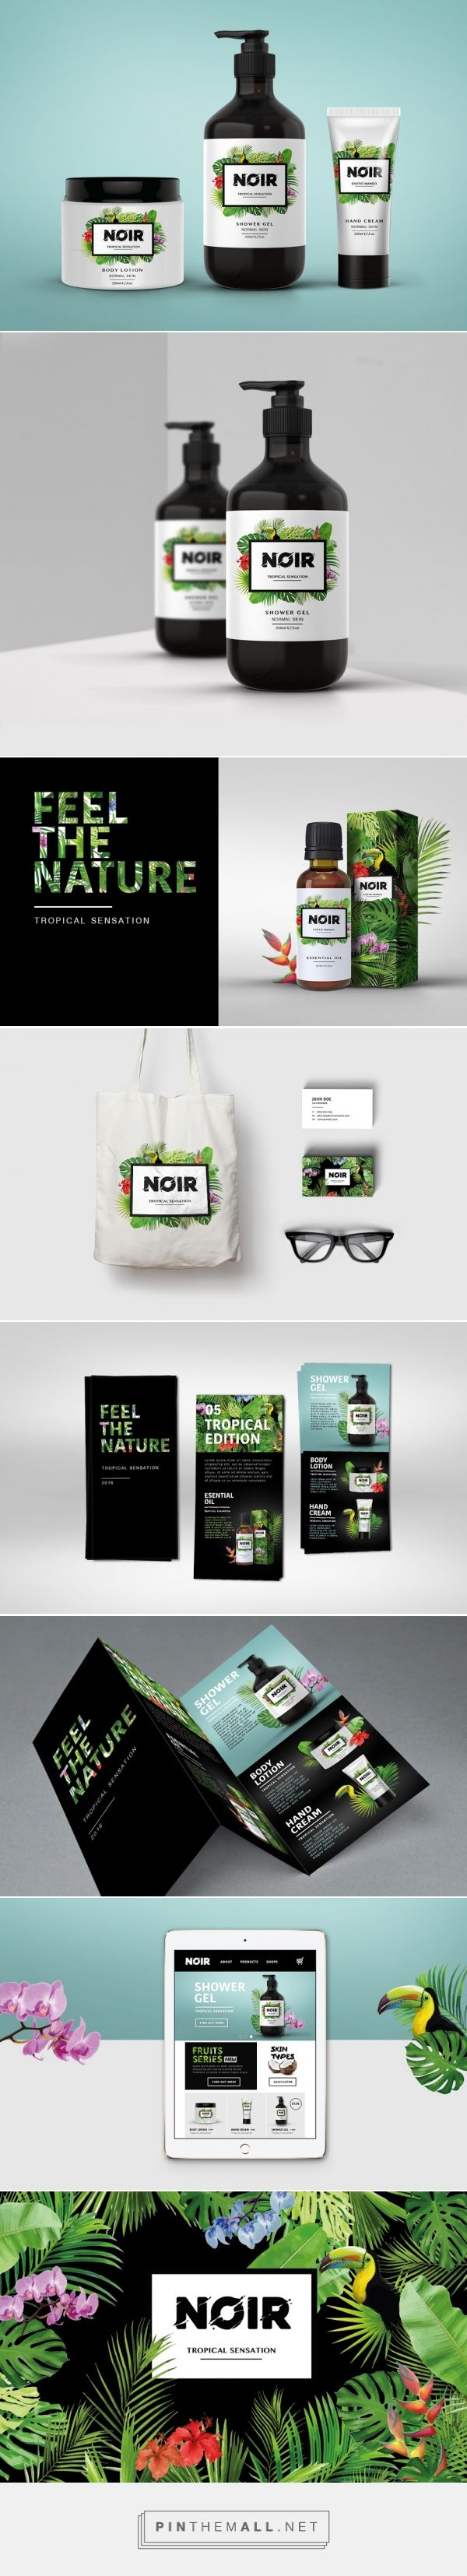 NOIR cosmetic packaging concept designed by Orsolya Hegedus (UK) - http://www.packagingoftheworld.com/2016/04/noir-packaging-concept.html